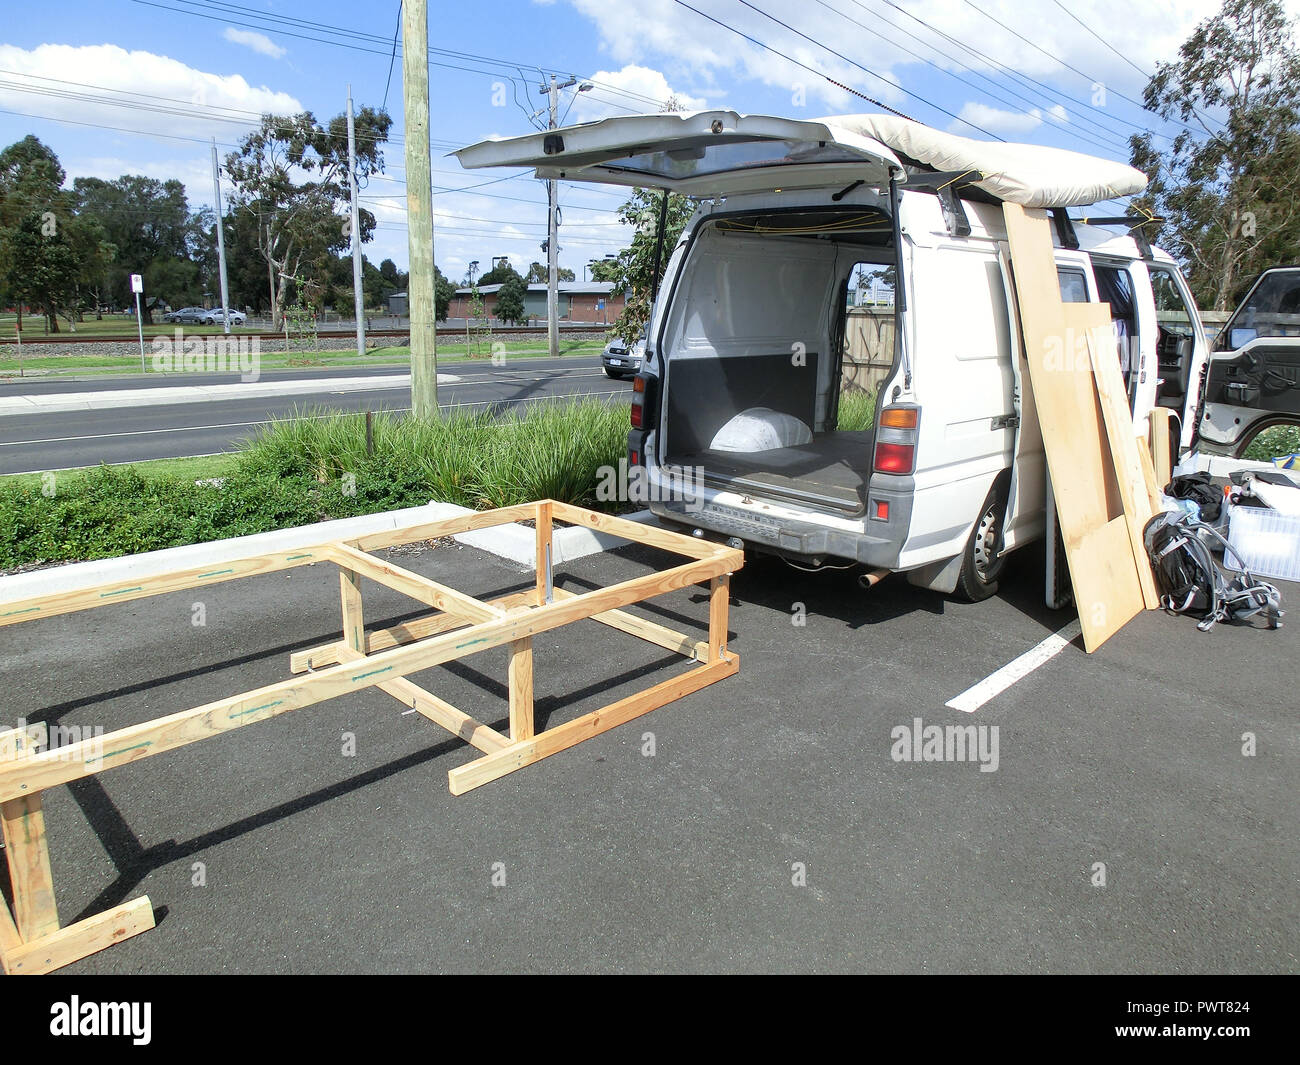 Construction Of A Bed Frame In A Campervan Stock Photo 222423996